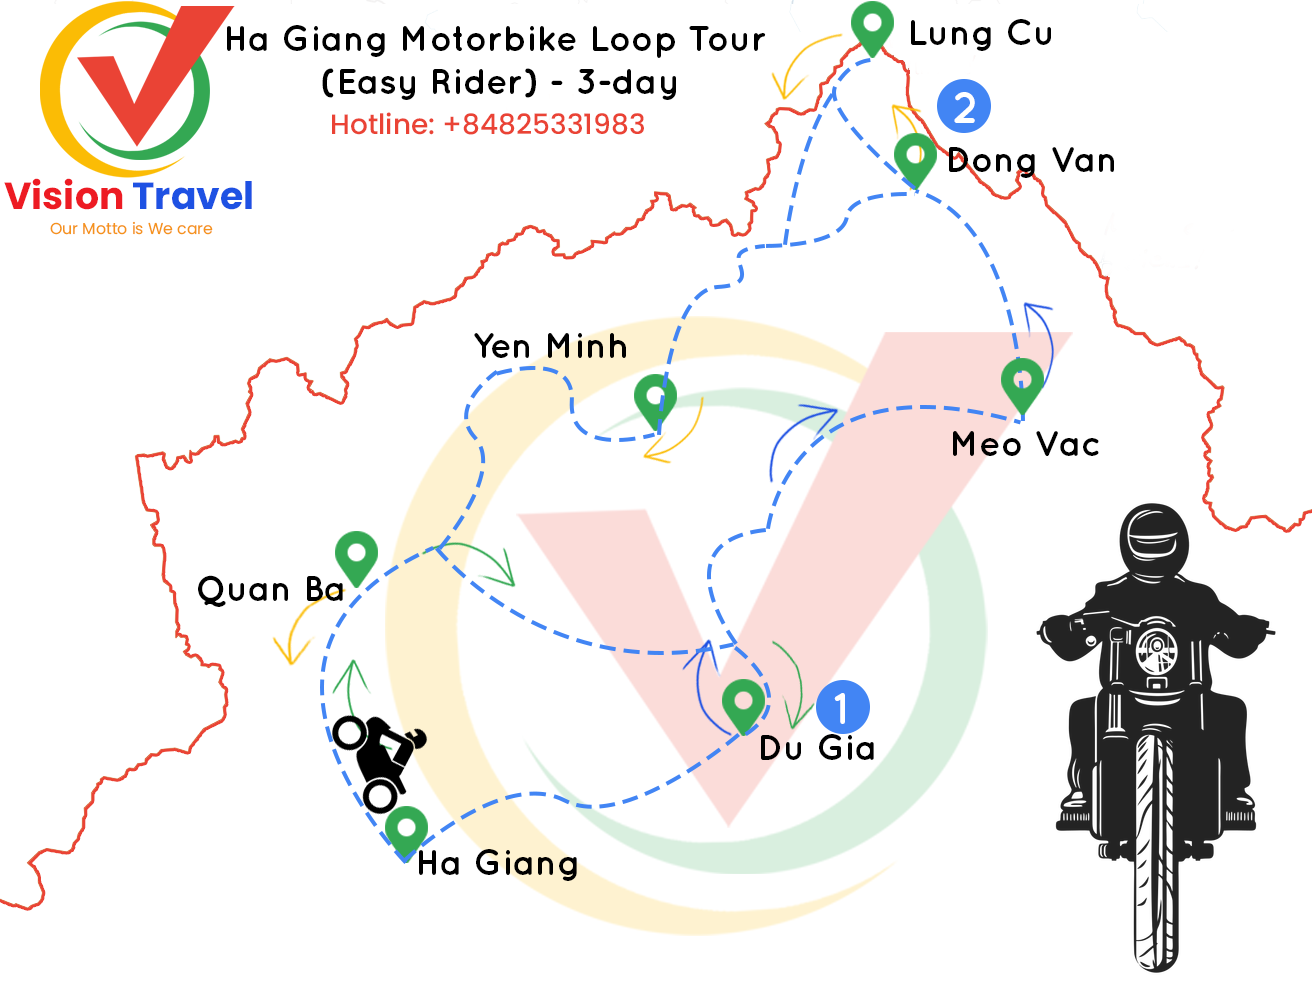 Travel map: 3-day Ha Giang Motorbike Loop Tour (Easy Rider)